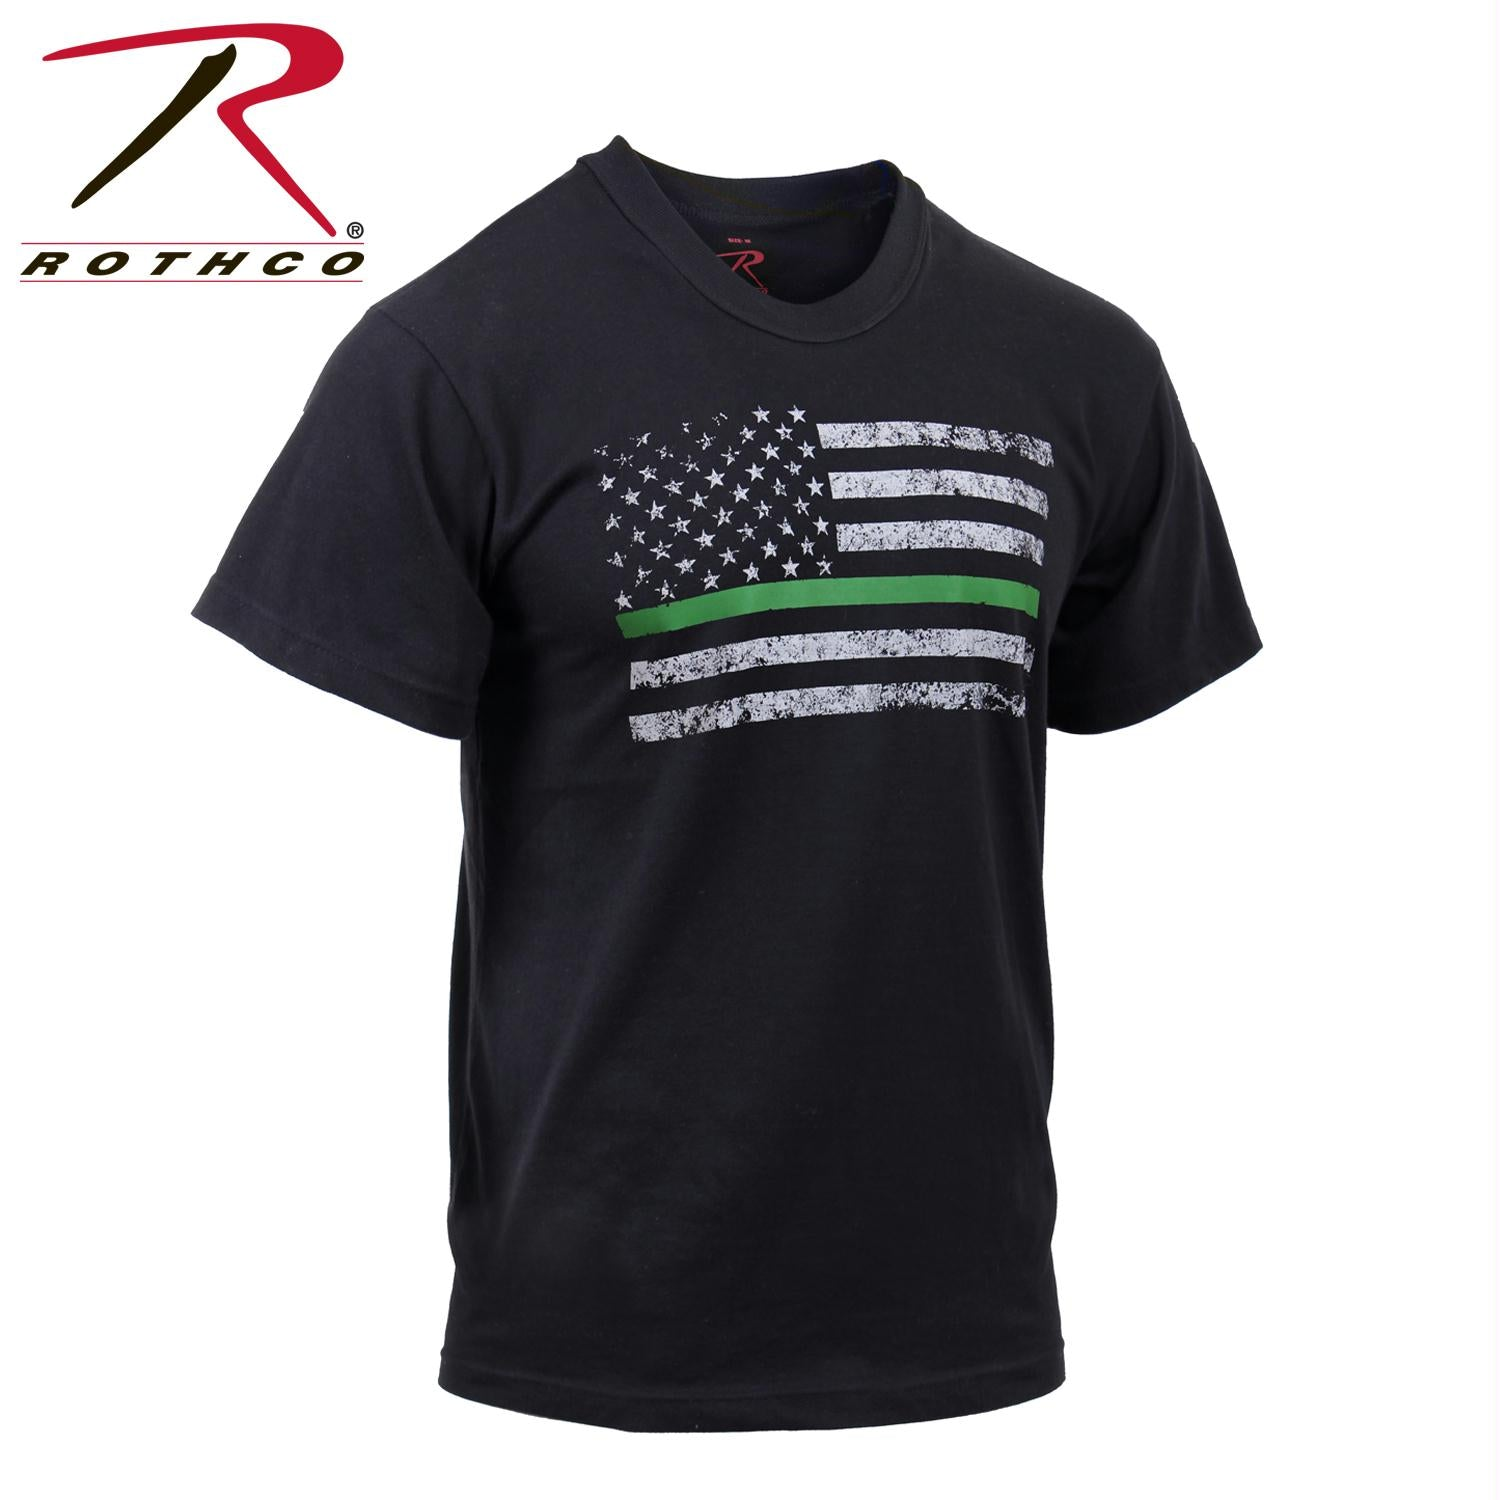 Rothco Thin Green Line Distressed Flag T-Shirt - Black / XL